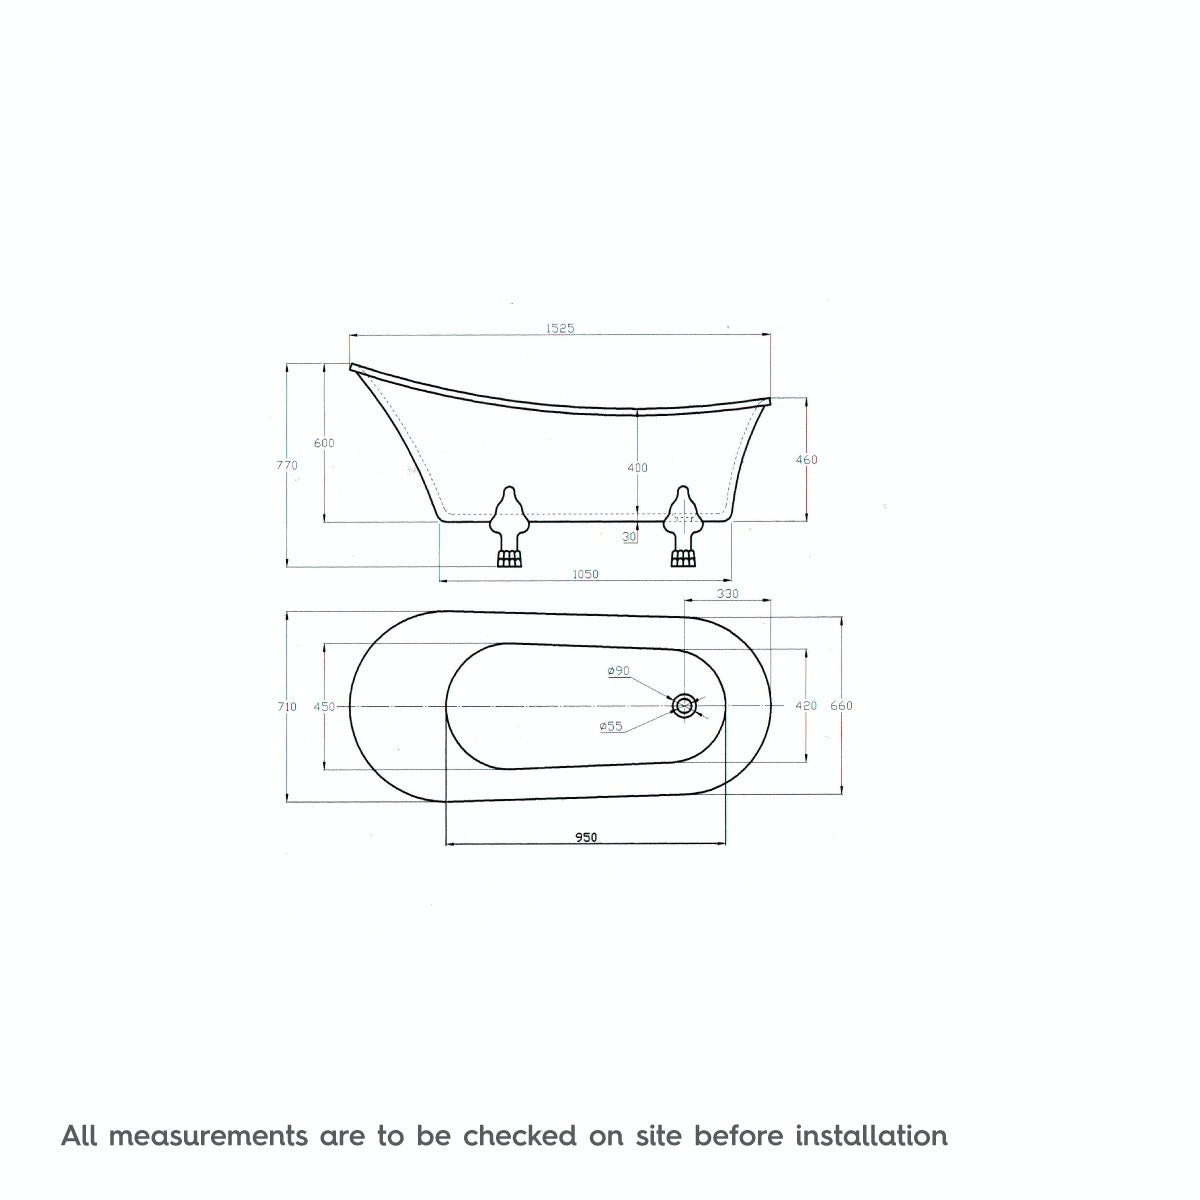 Dimensions for The Bath Co. Camberley freestanding slipper bath with ball feet